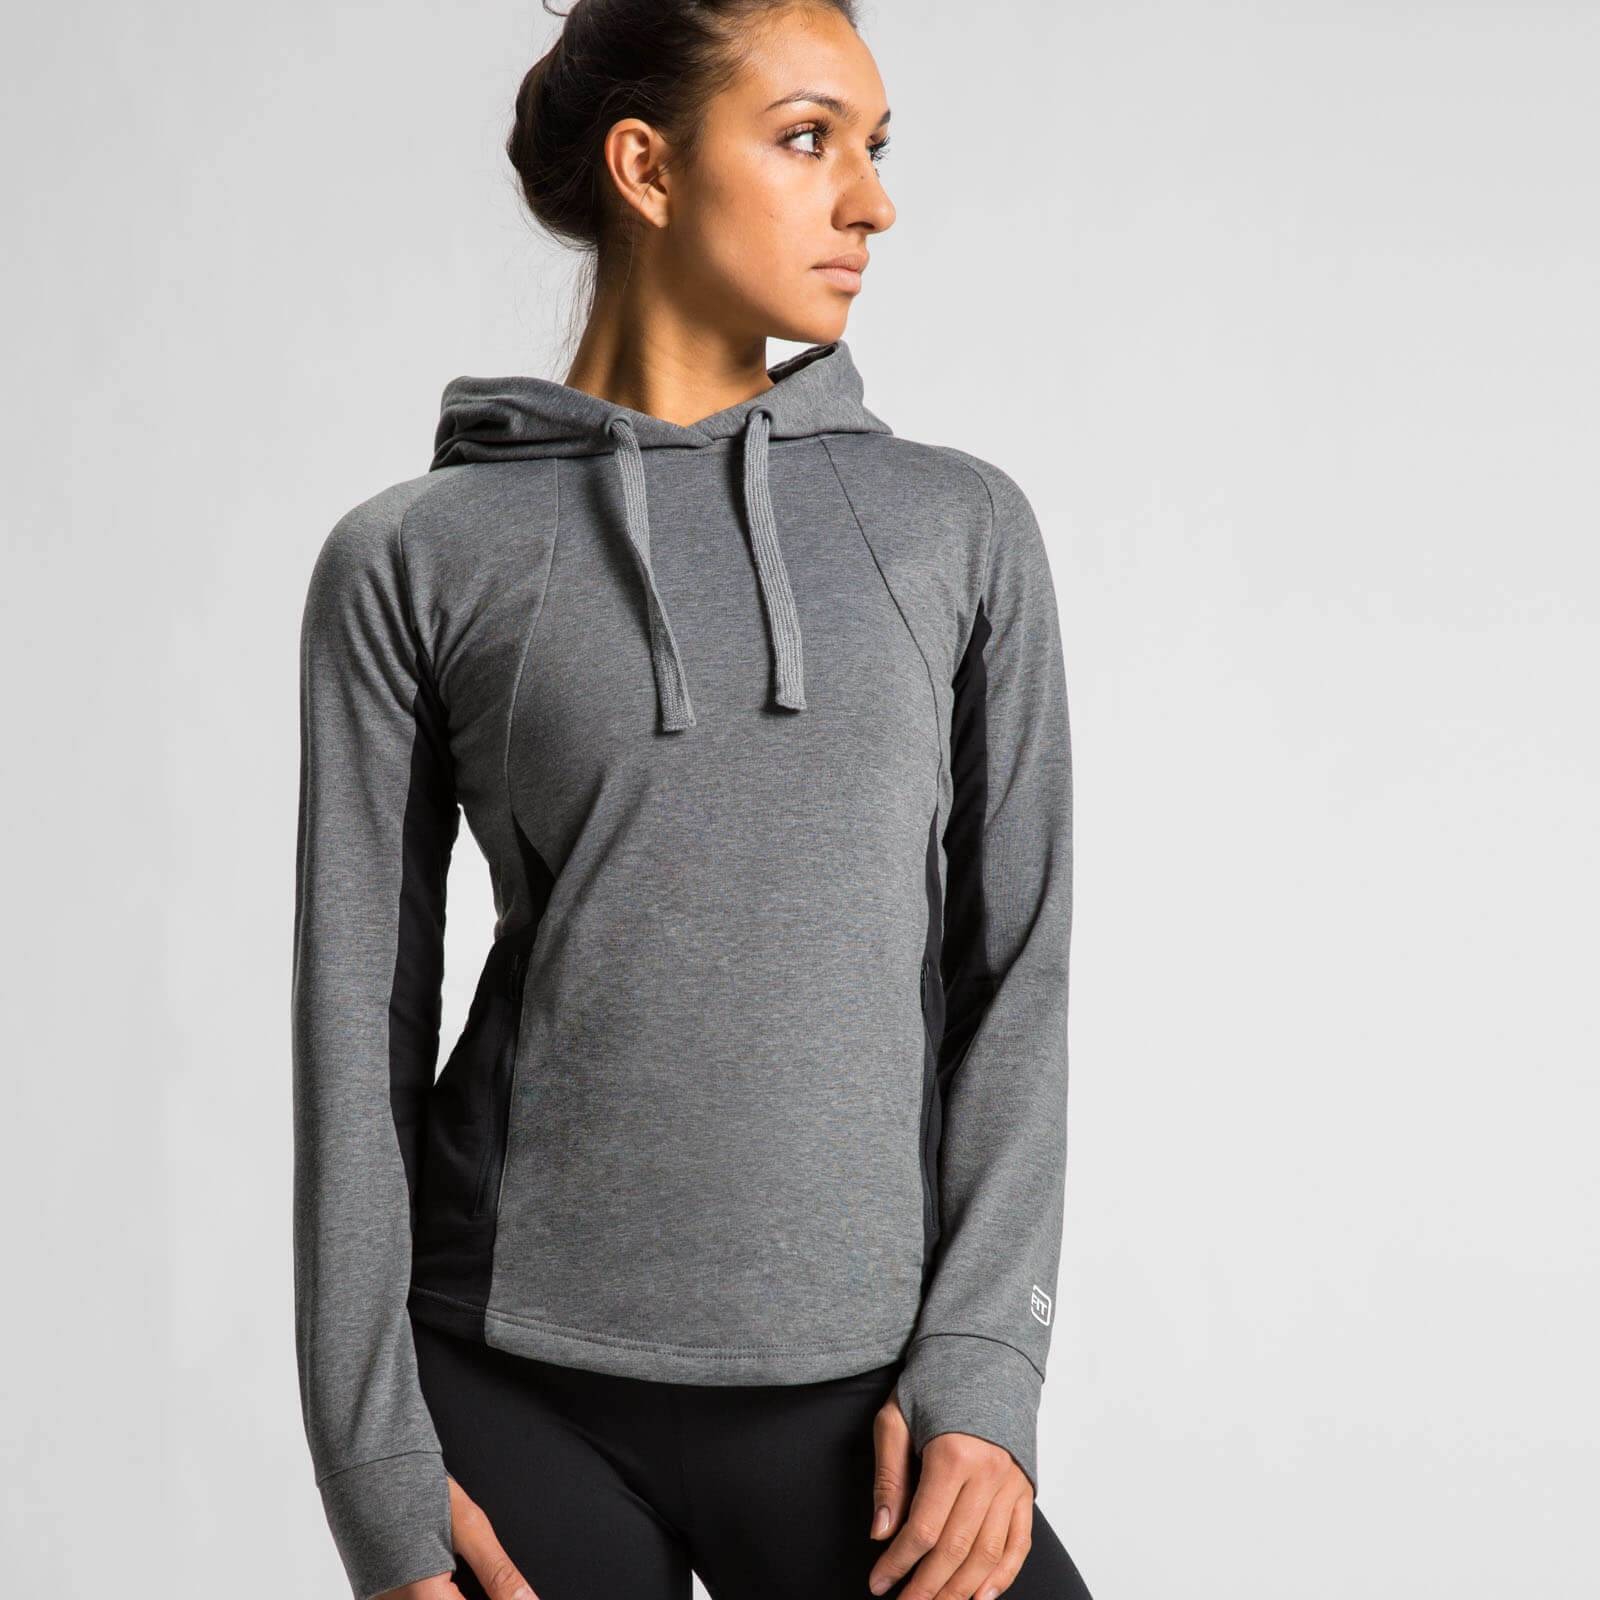 IdealFit Superlite Pullover Hoodie - Charcoal - XS - Charcoal